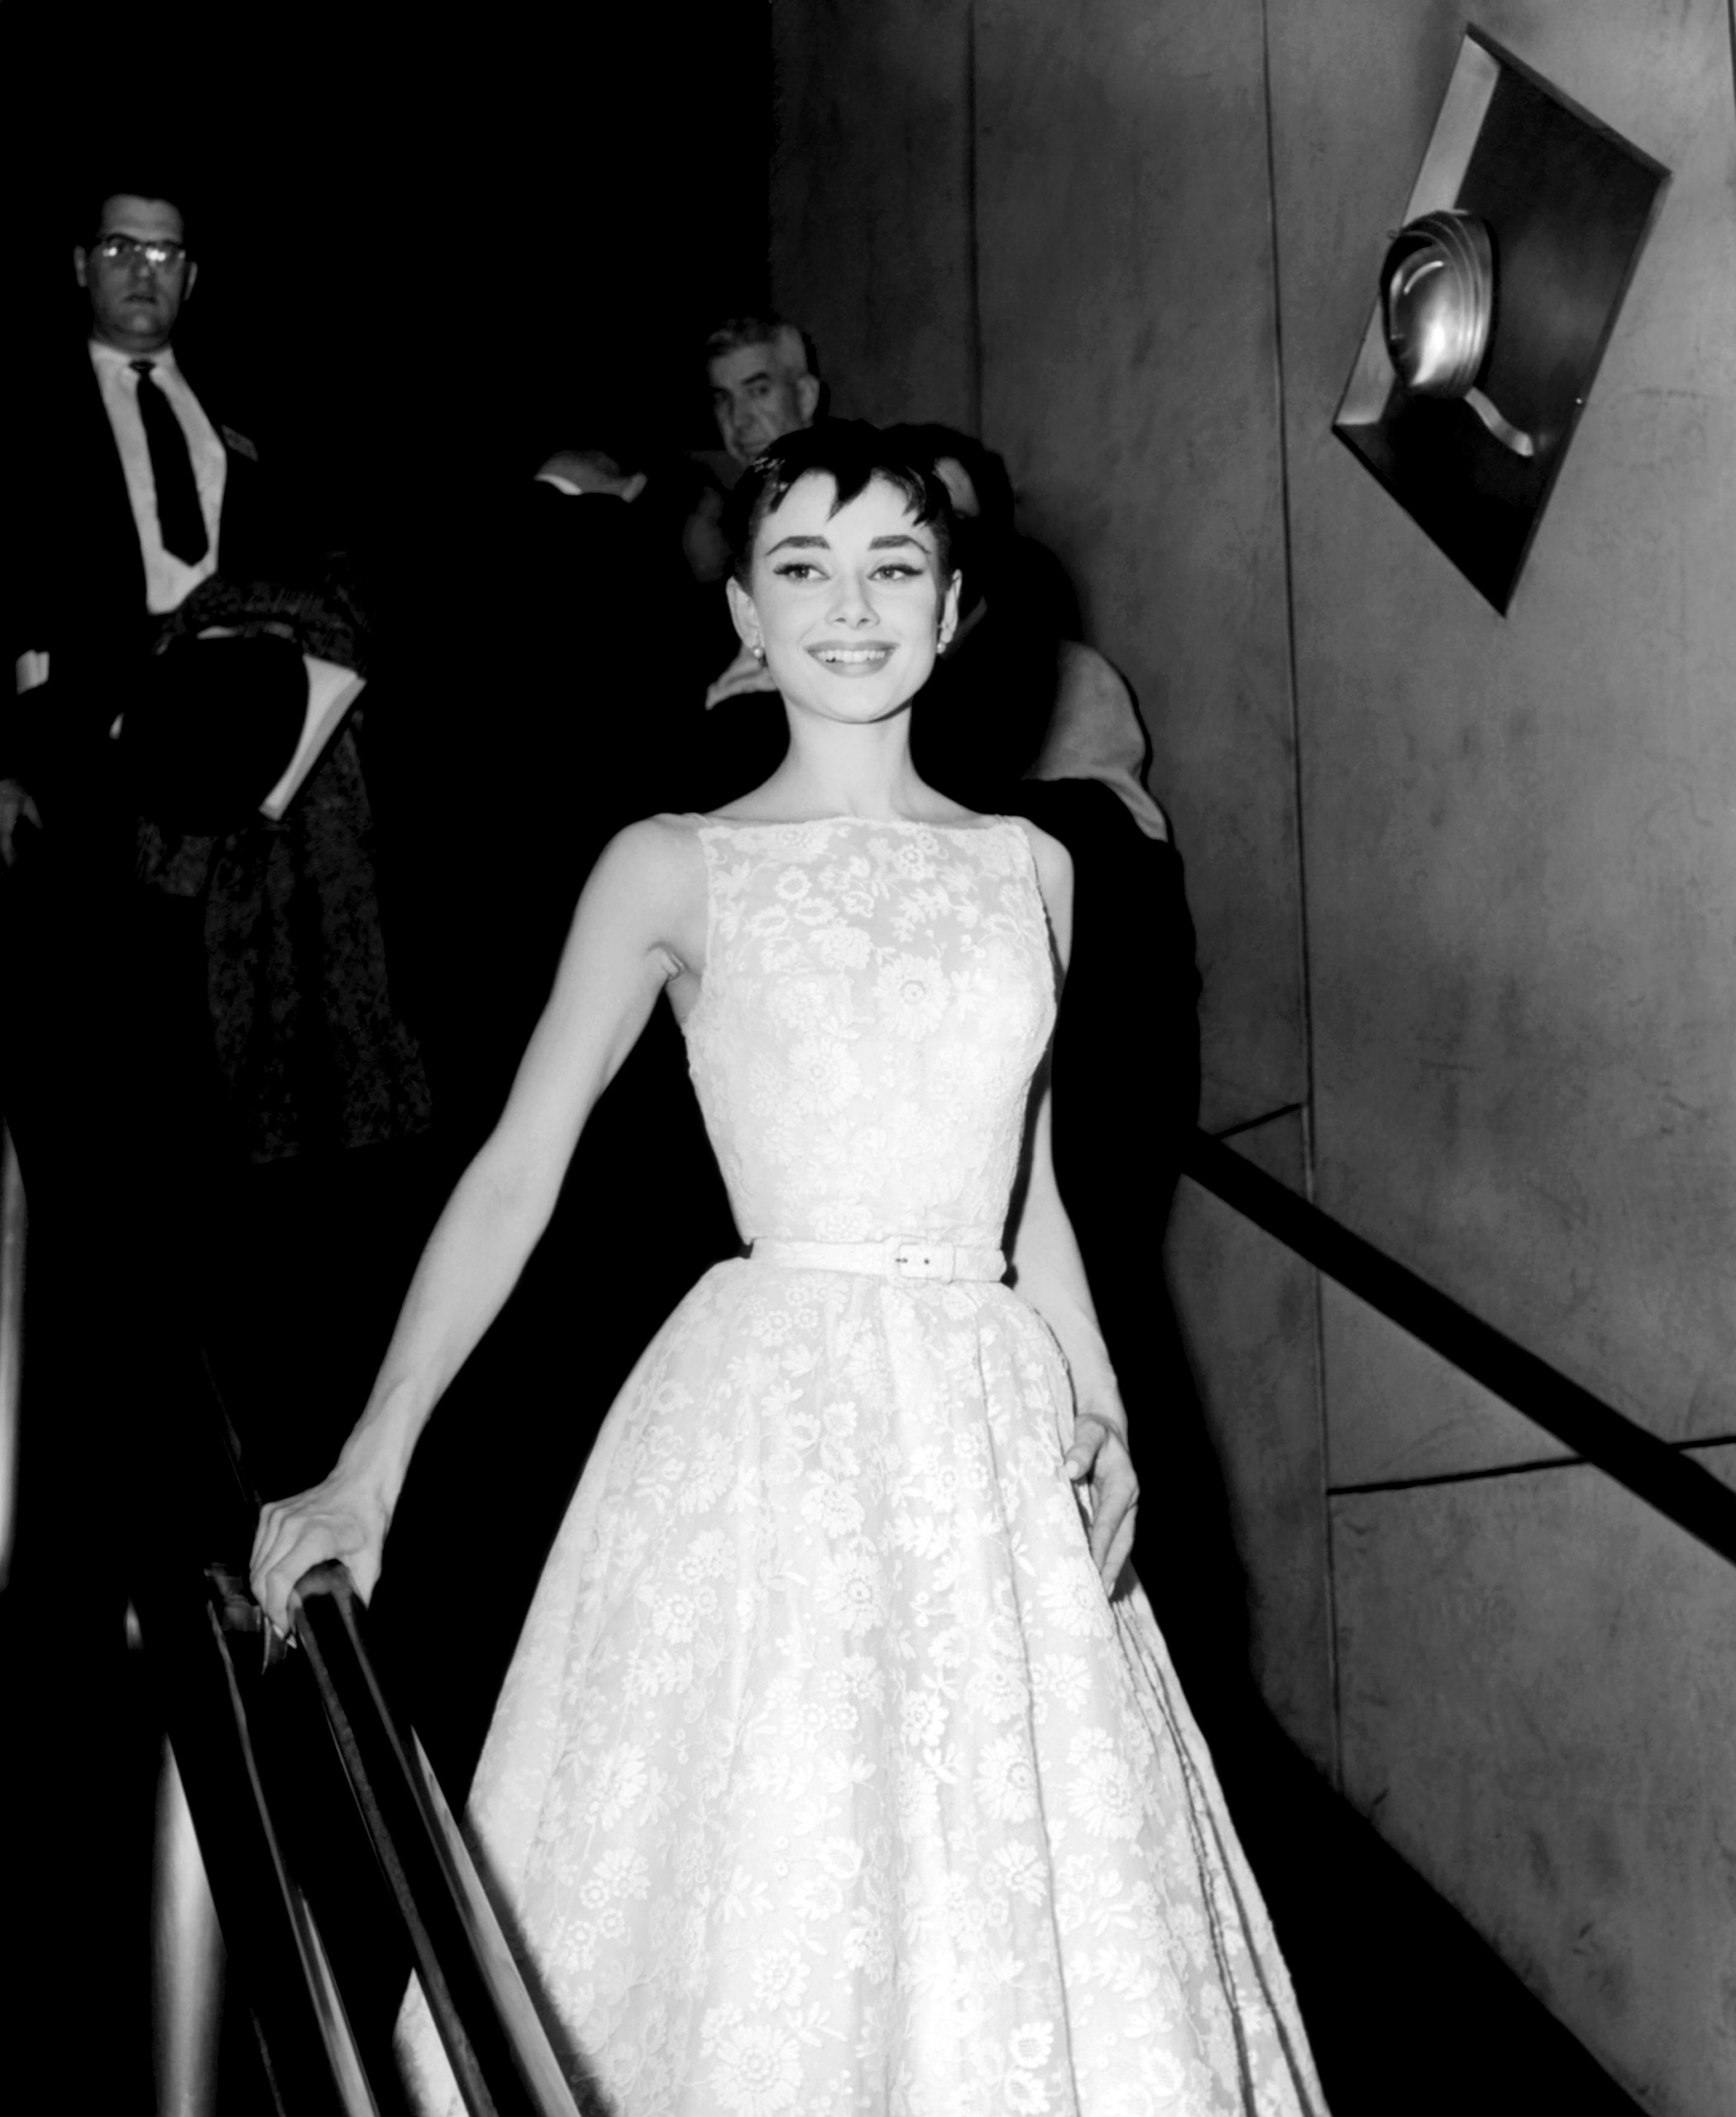 Audrey Hepburn, wearing a Givenchy gown, at the Academy Awards, 1954.